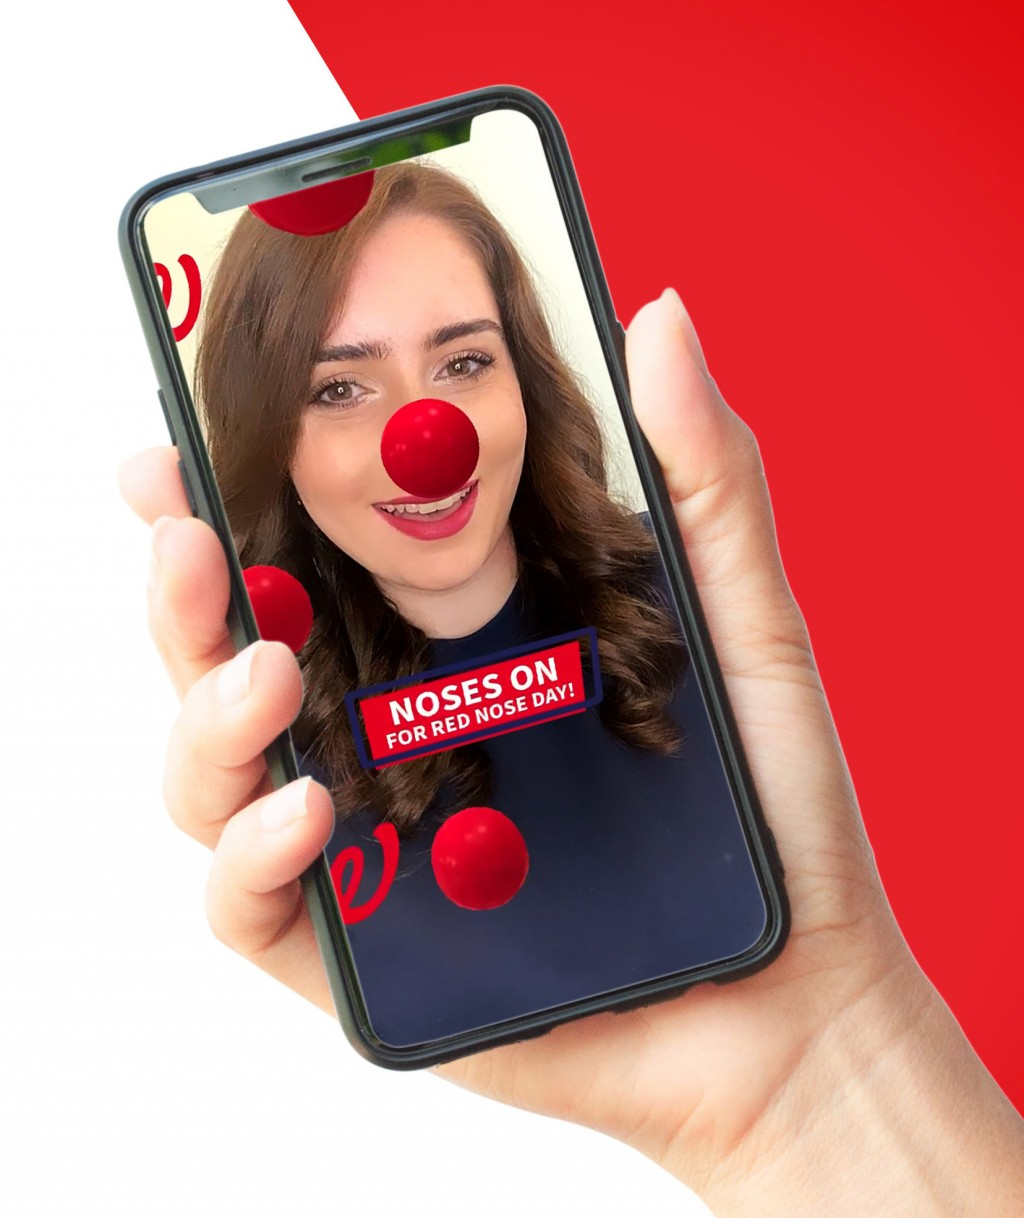 This undated photo provided by Comic Relief's Red Nose Day shows the virtual Red Nose that donors can purchase to show their support of the Red Nose D...